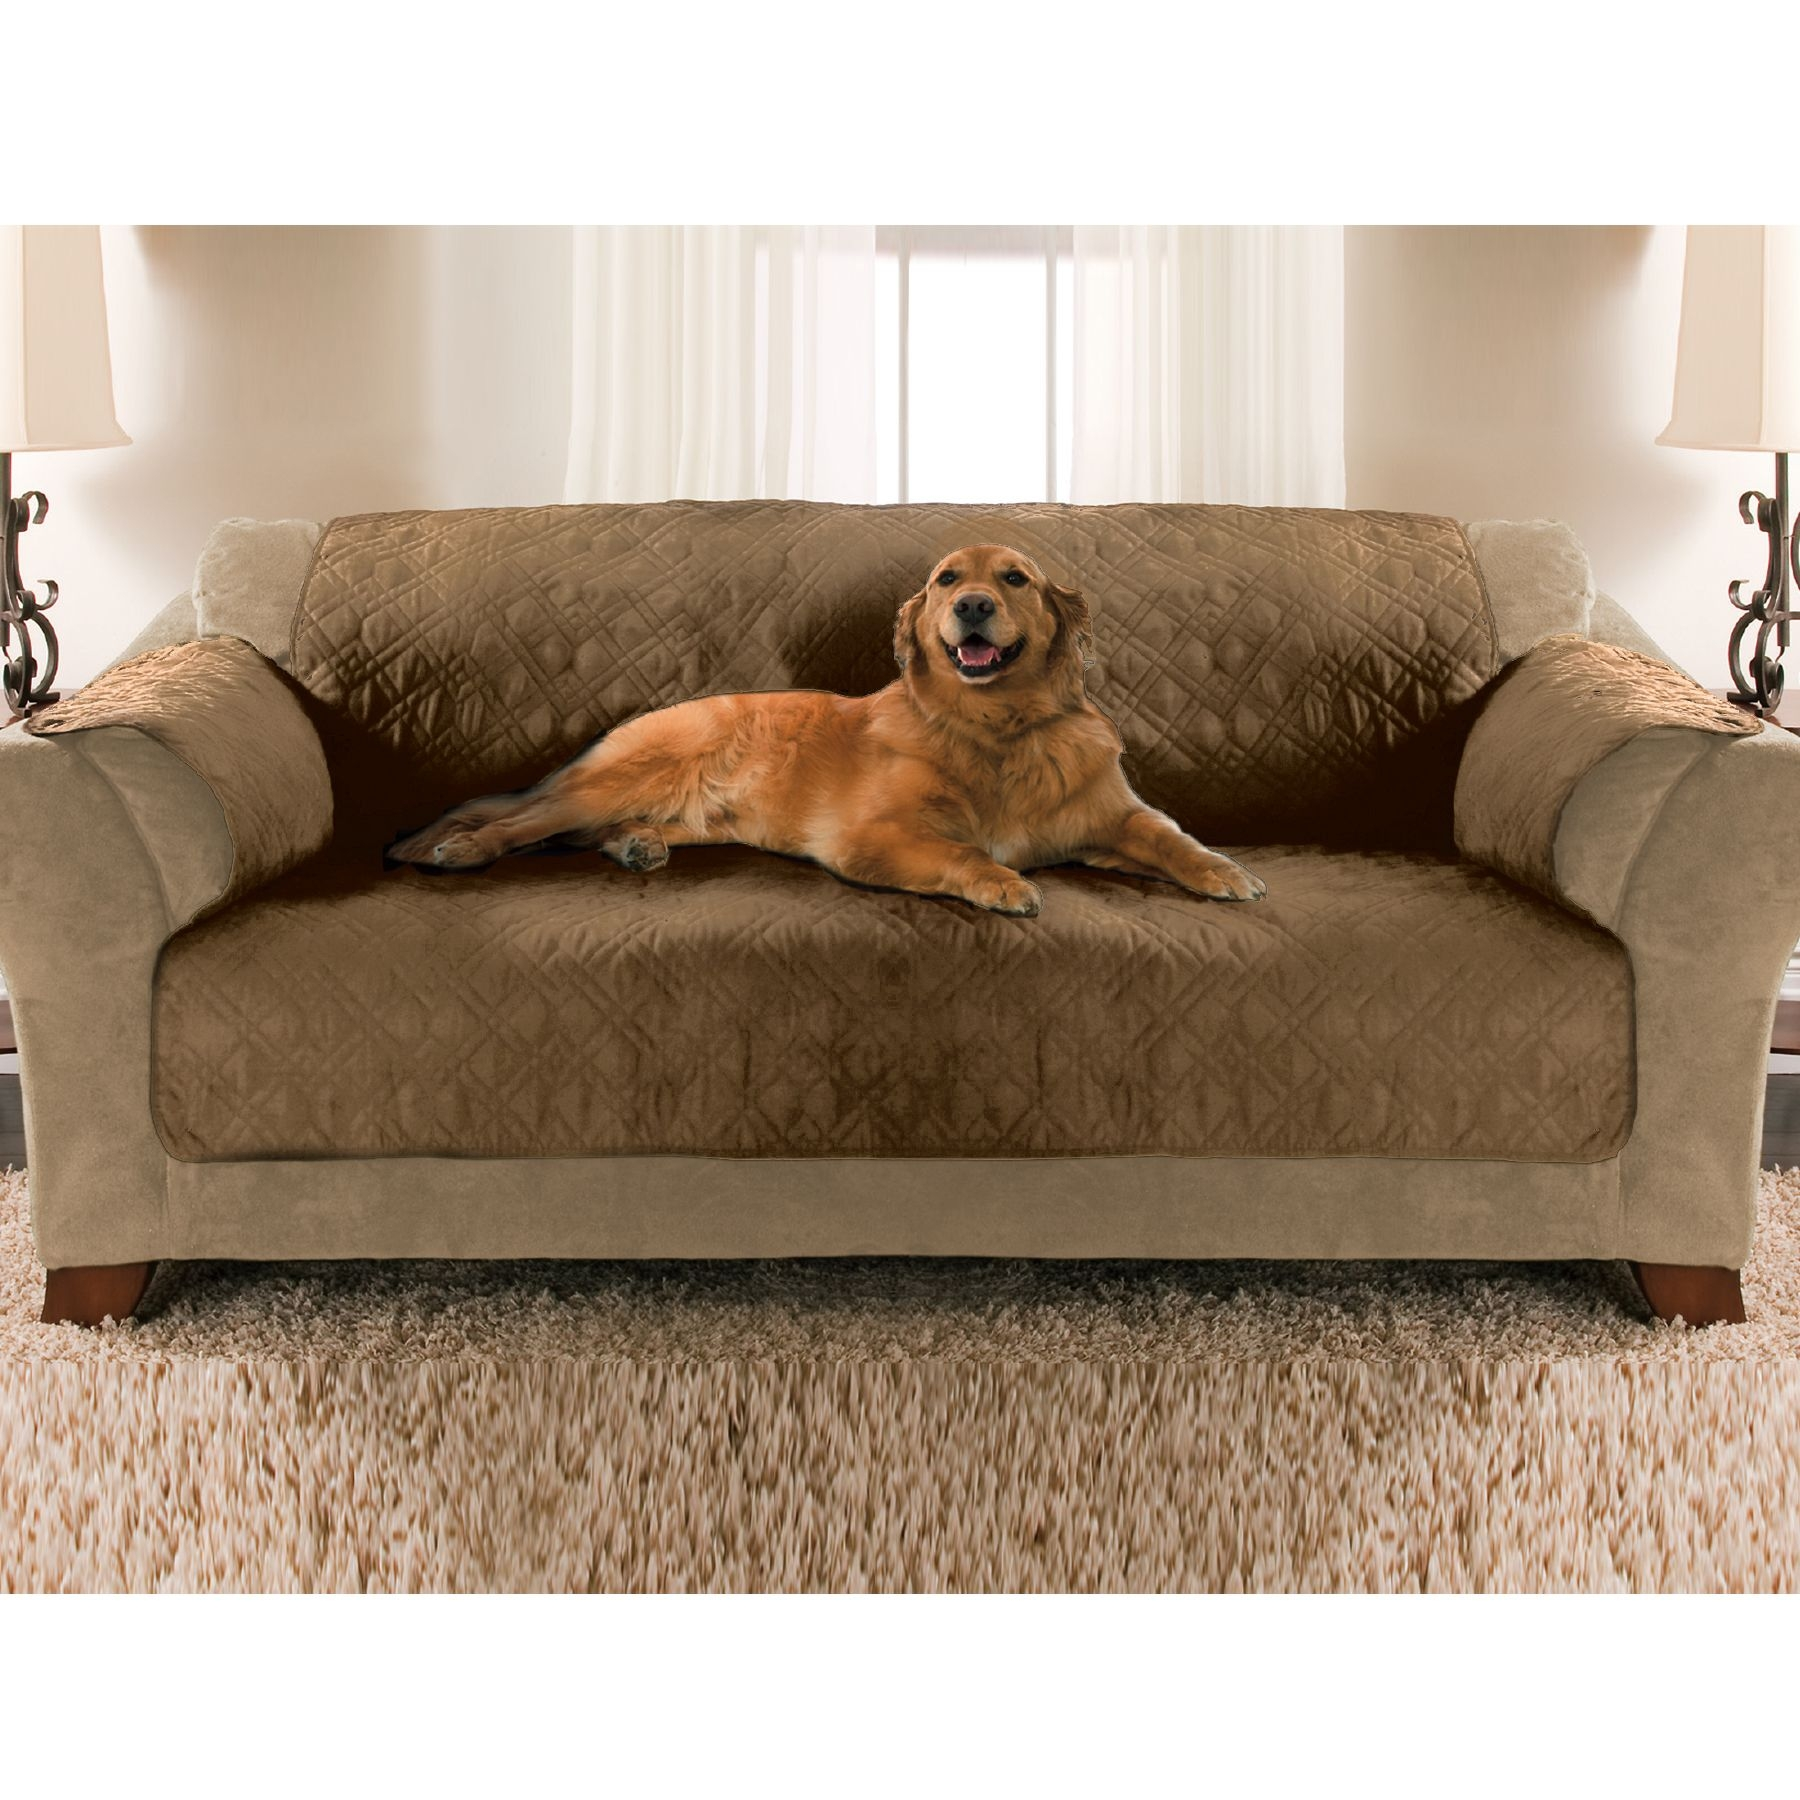 Essential Home Sofa Pet Cover Tan Shop Your Way Online Shopping Amp Earn Points On Tools